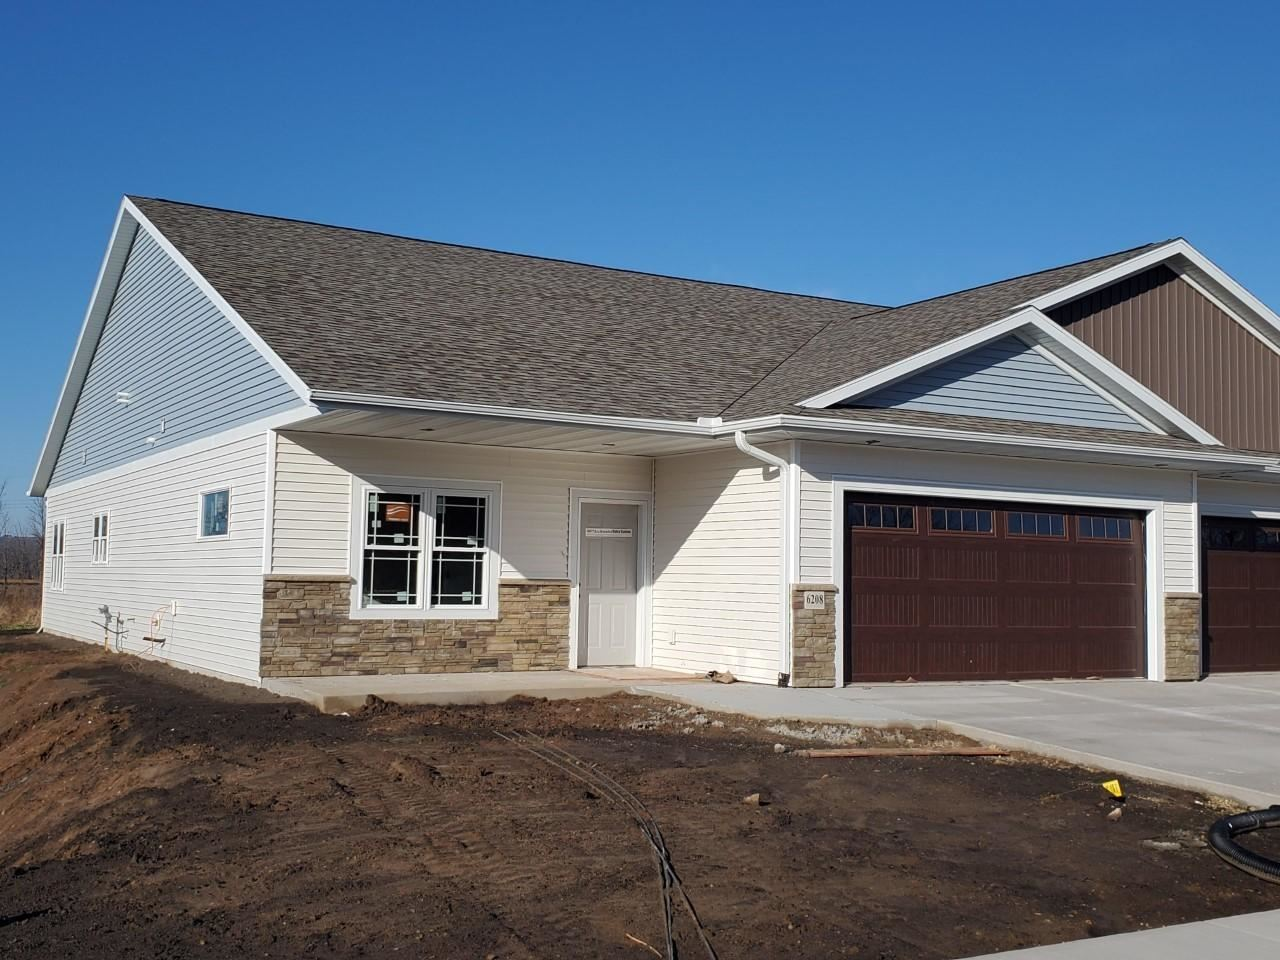 6208 River Run Rd, La Crosse, WI 54601 - MLS#: 1698723